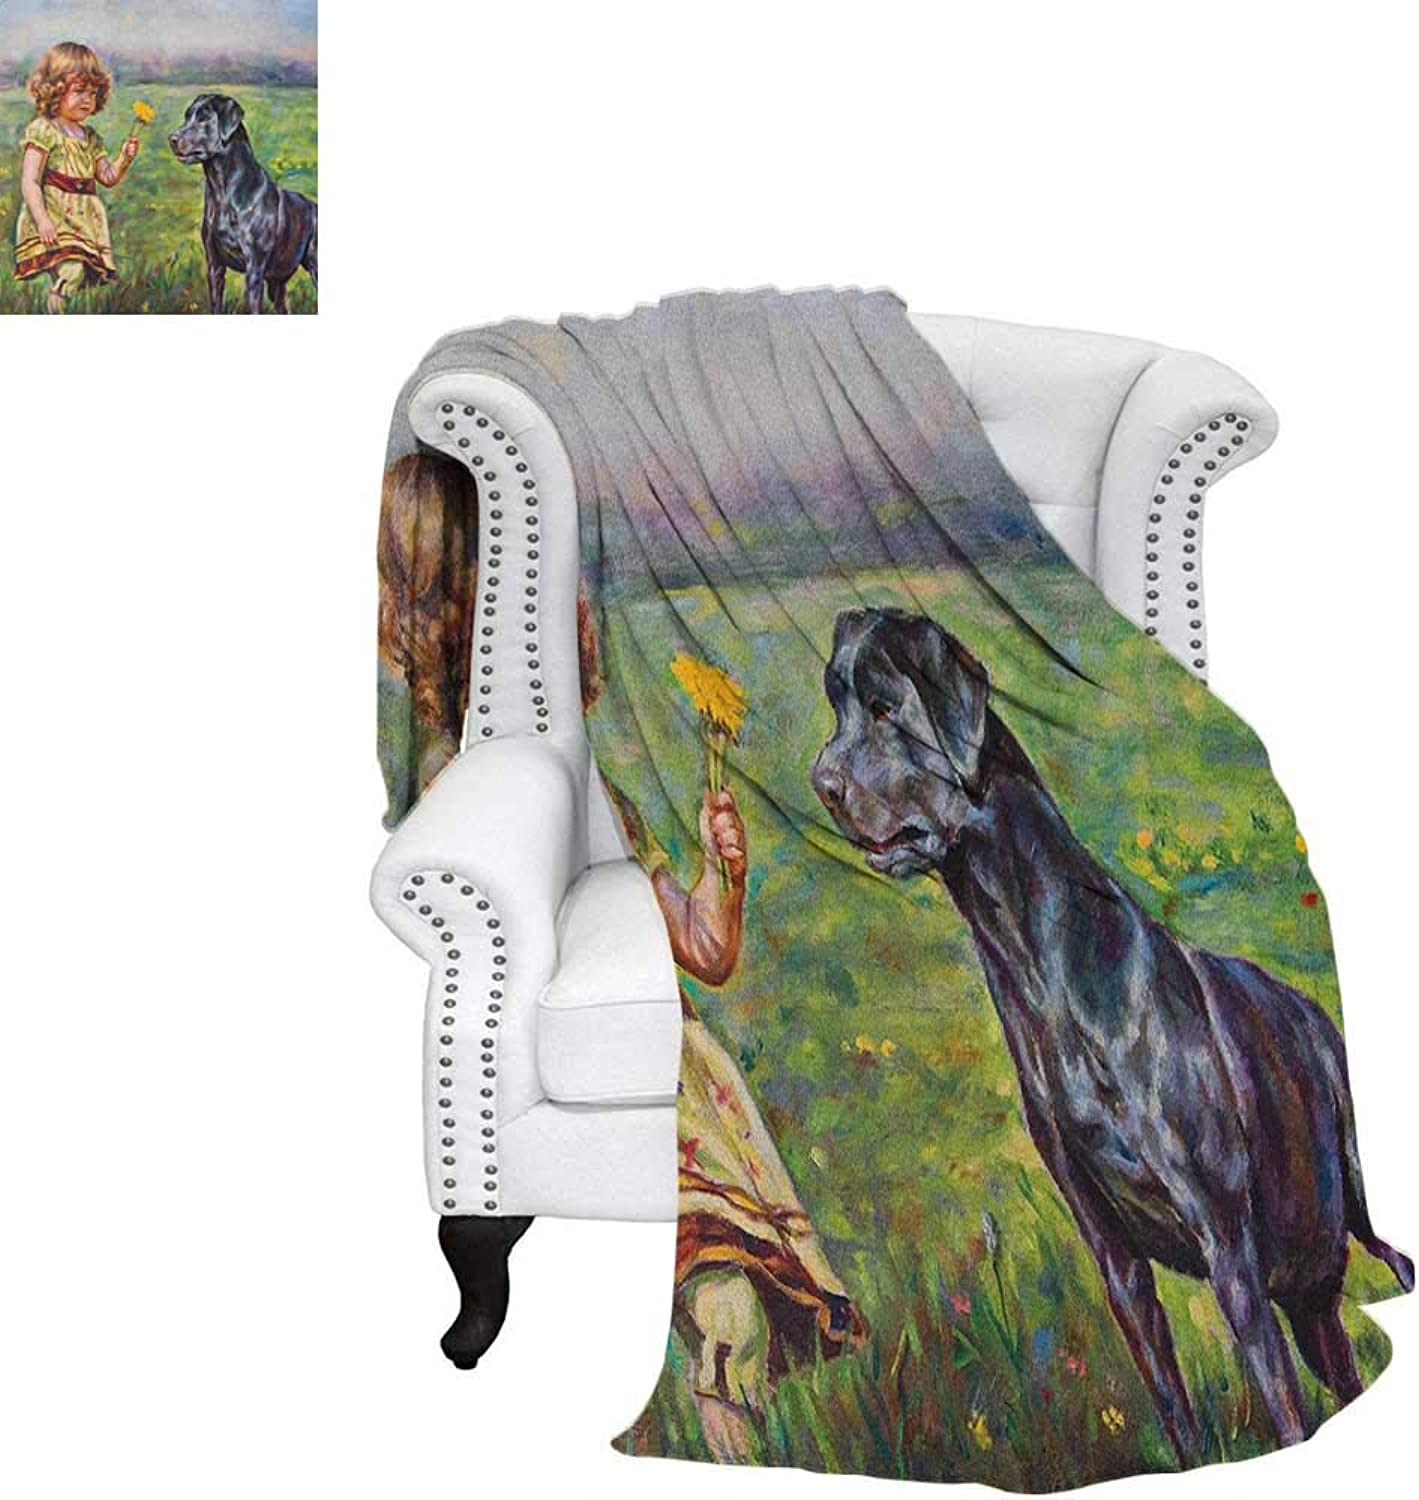 CountryFlannel Single Student blanketPaint of a Cute Little Girl with her Tiny Flower and Dog in The Meadow Pastoral ArtworkStudent Blanket 60 x50  Multi